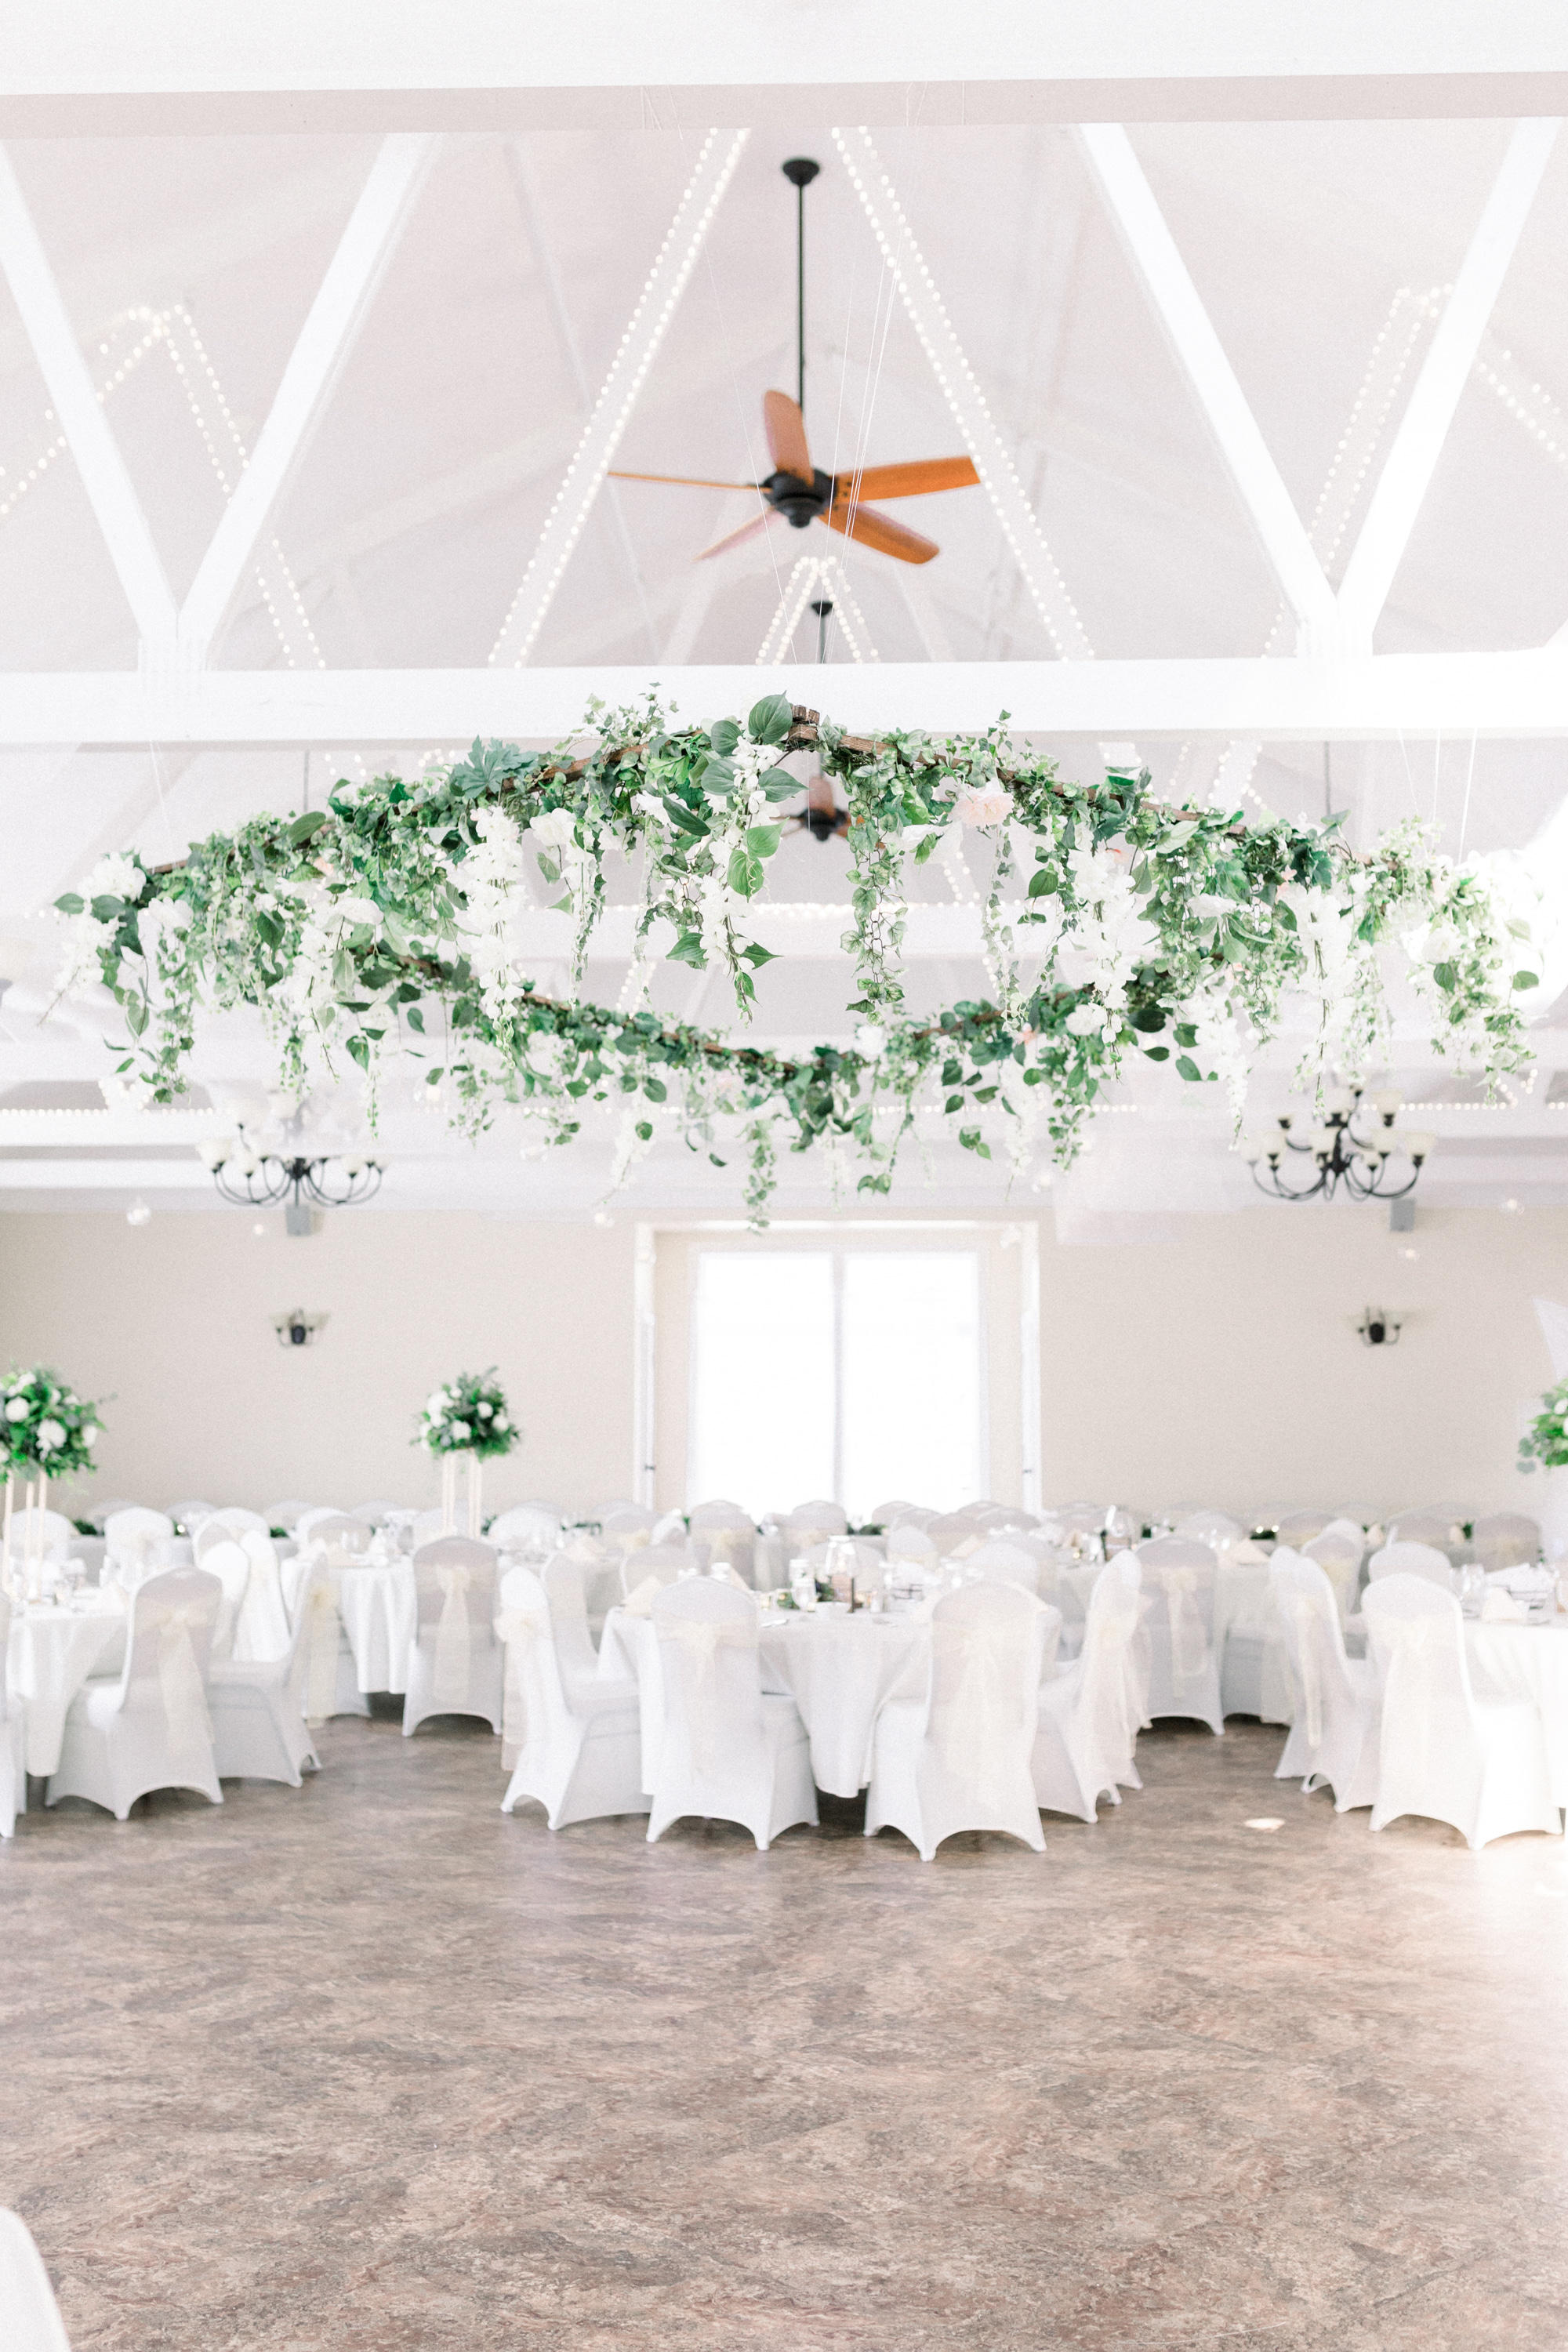 DIY hanging floral wreath above dance floor for Pittsburgh wedding planned by Exhale Events. Find more wedding inspiration at exhale-events.com!